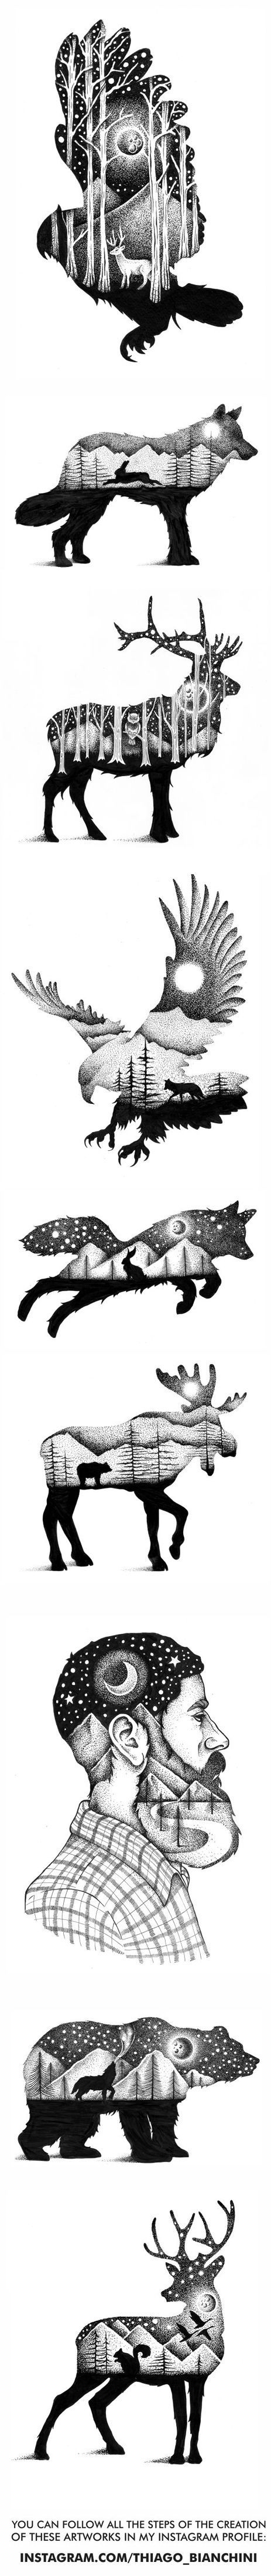 Tatto Ideas 2017 – Double exposure illustrations using stippling technique. Some of them were used …